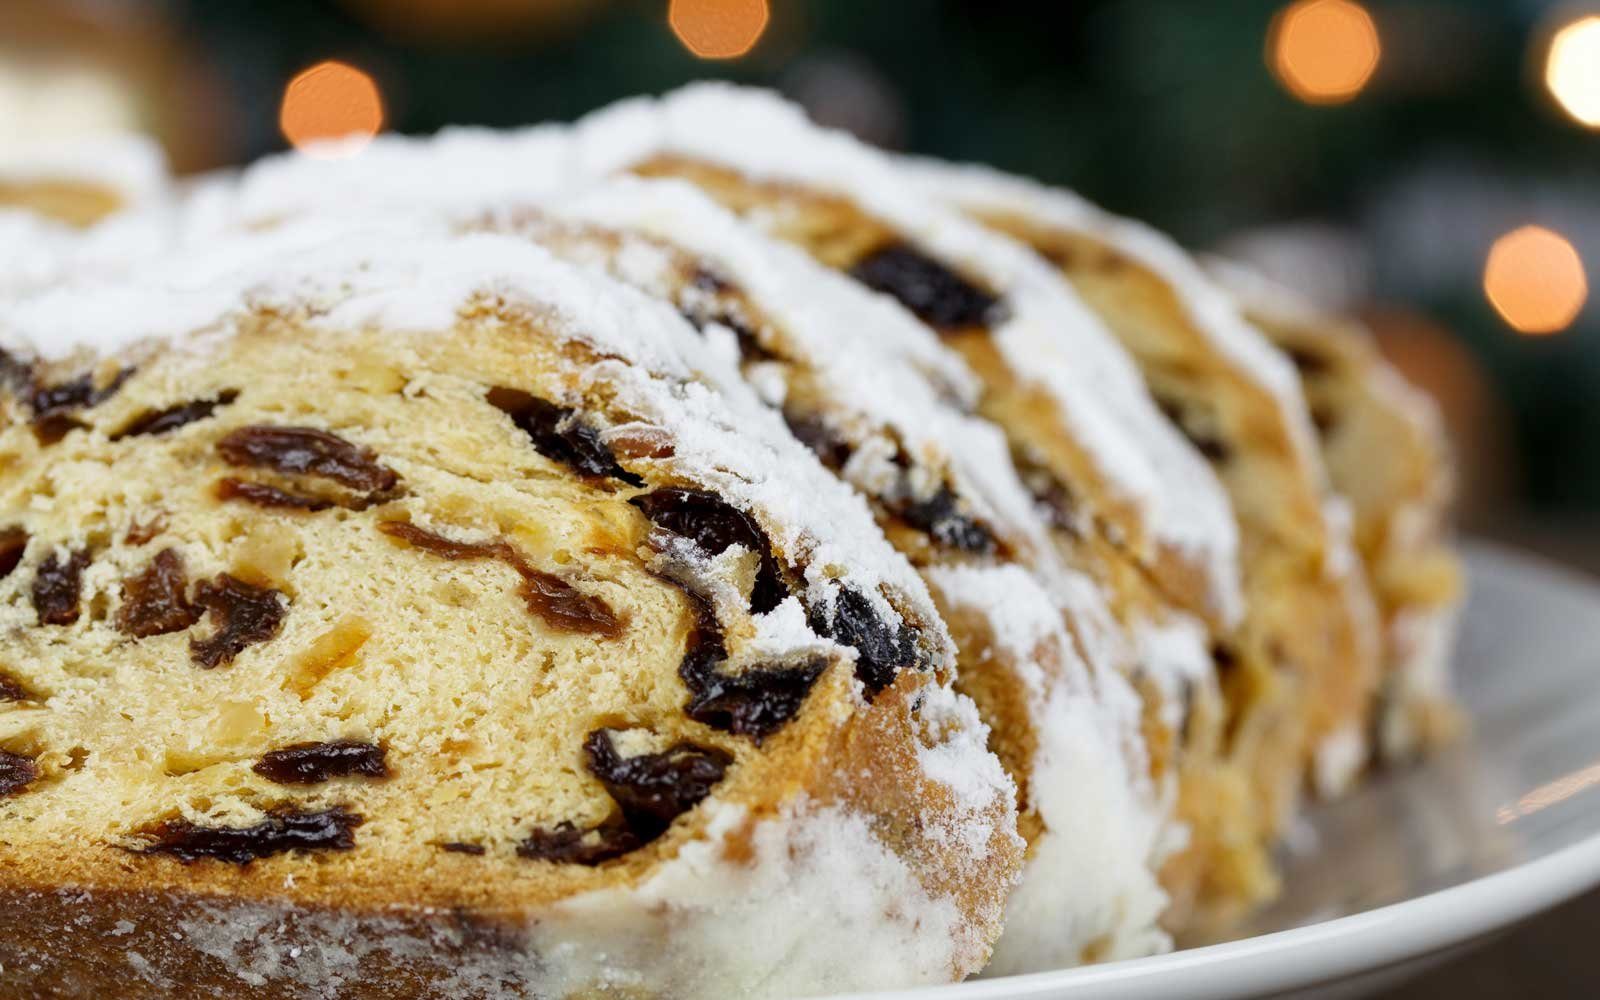 Ingredients like raising, butter, sweet and bitter almonds, candied orange and lemon peel, and stollen spices and combined to create this German delicacy.